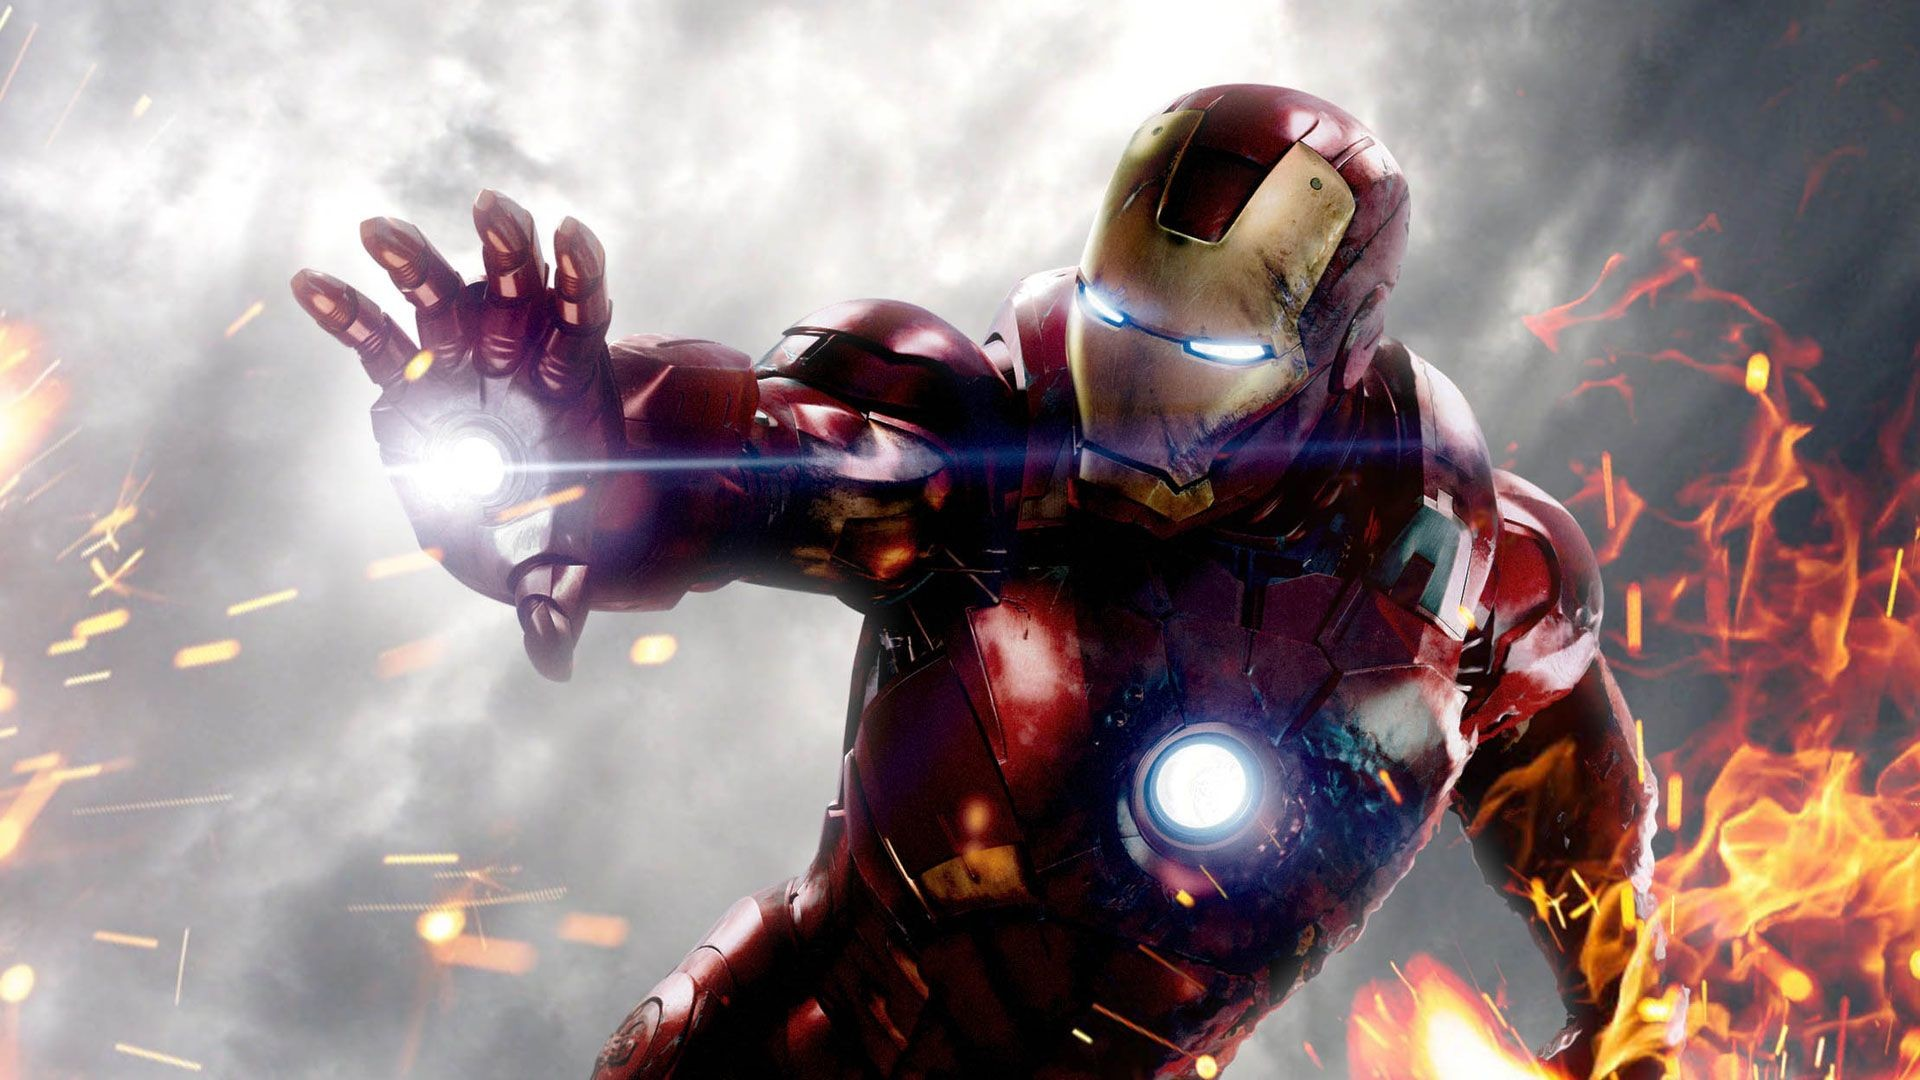 1920x1080 Ironman Wallpaper Iron Man In Action In The Fire 1920?1080 .